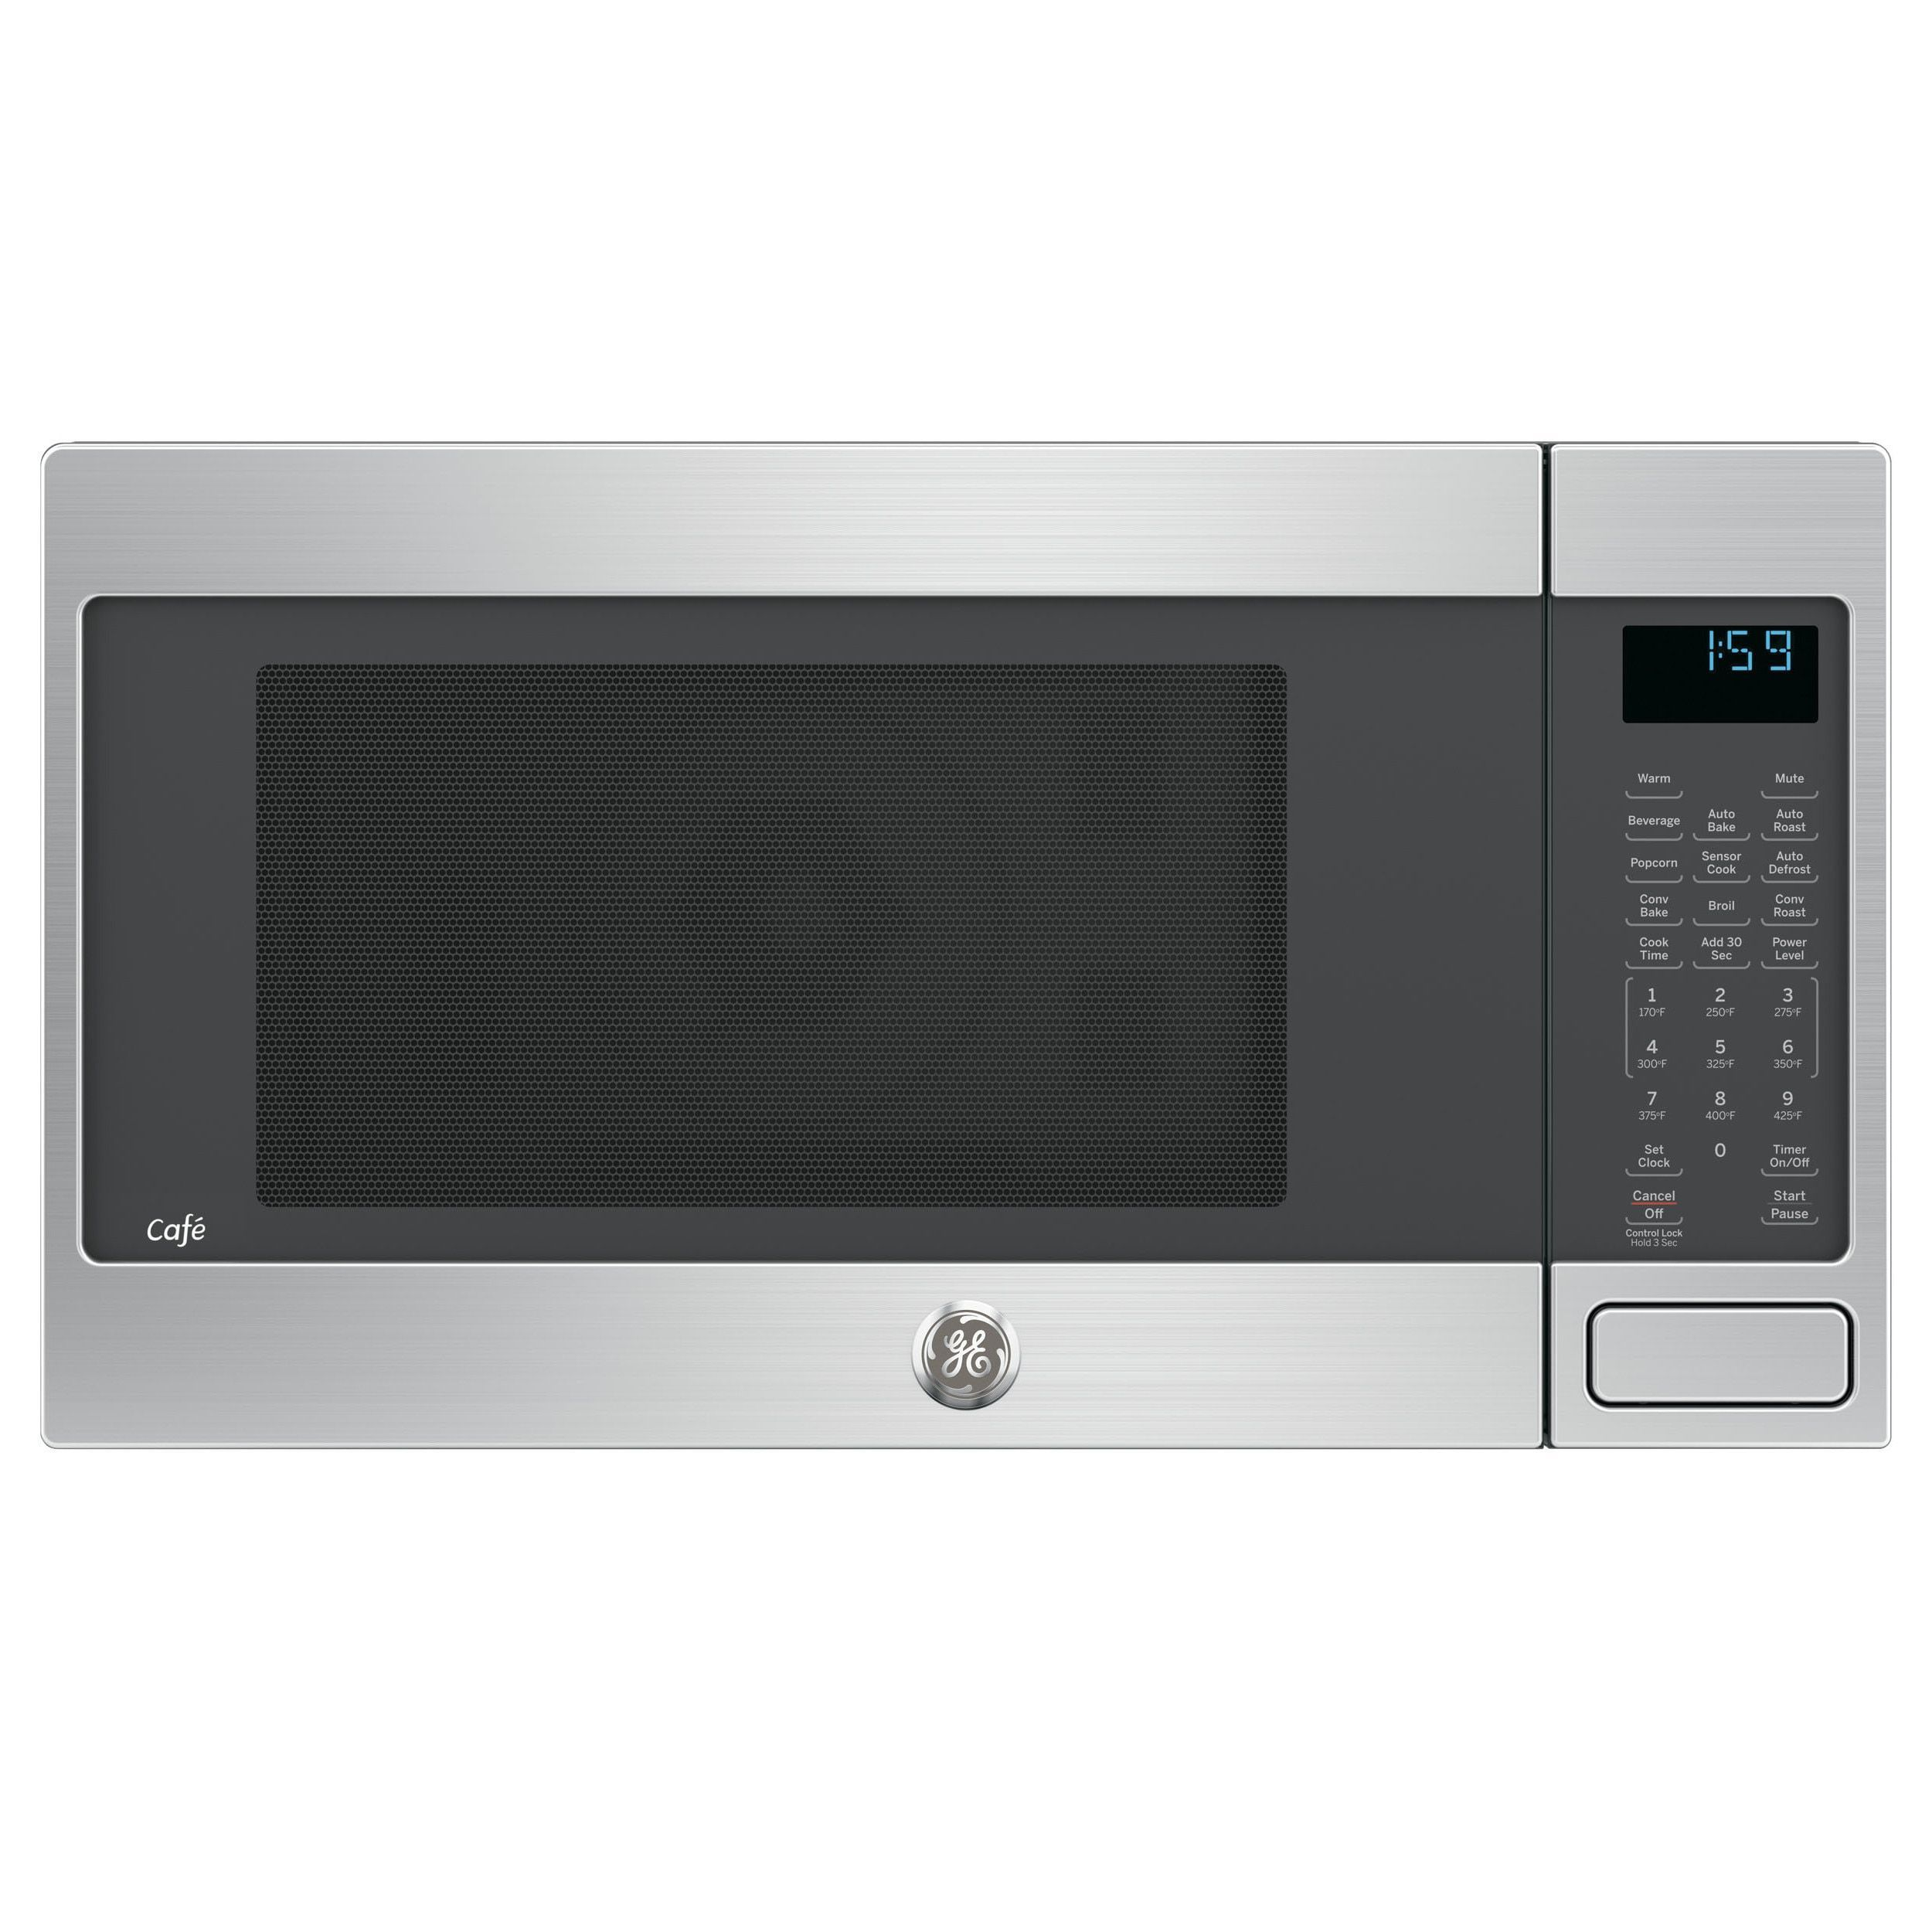 Ge Cafe Series 1 5 Cubic Feet Countertop Convection Microwave Oven Stainless Steel